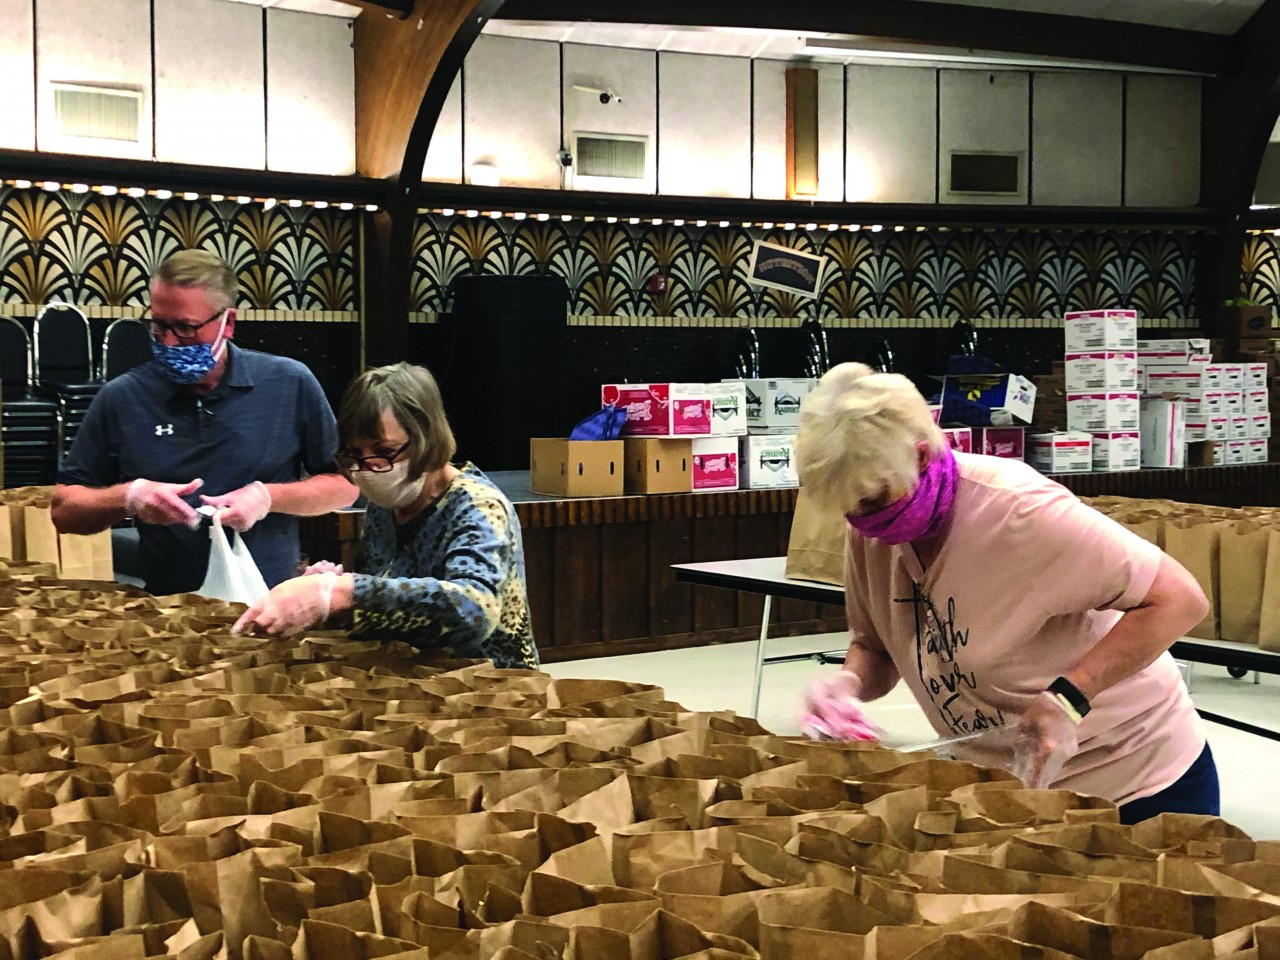 Feeding the hungry: Churches provide relief to struggling communities